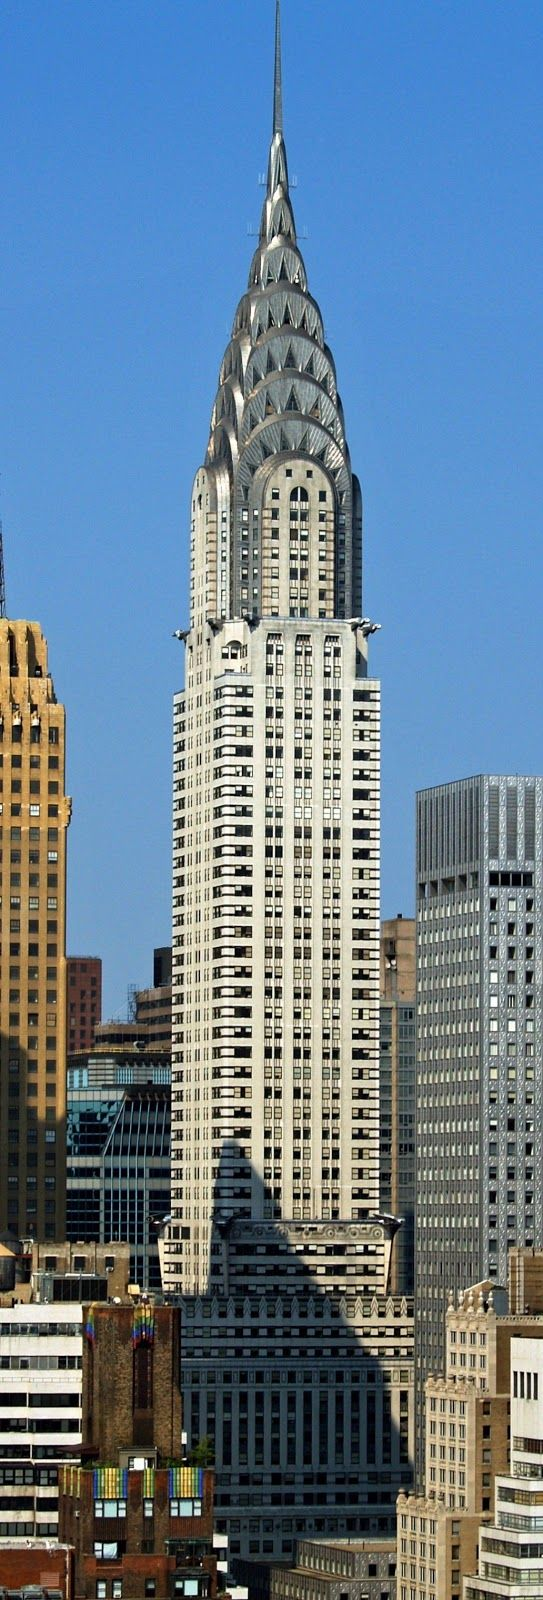 Chrysler Building, New York | Express Photos Best building in the world!